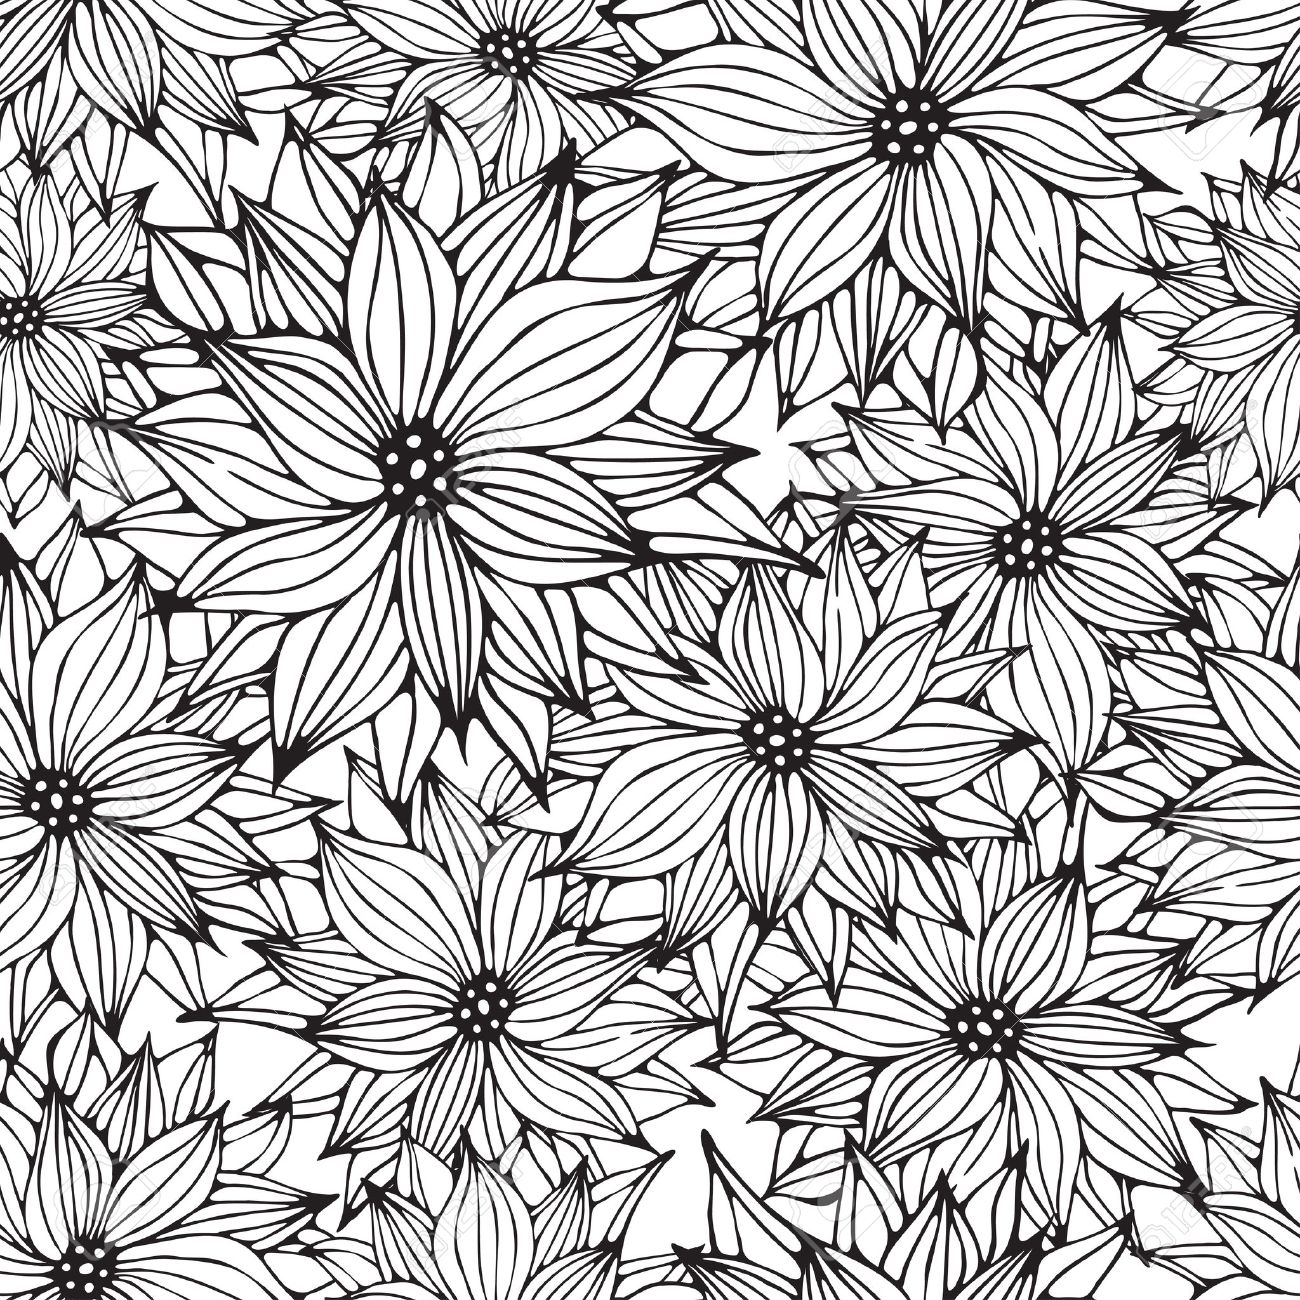 1300x1300 Seamless Floral White Black Background, Flower Hand Drawn Pattern